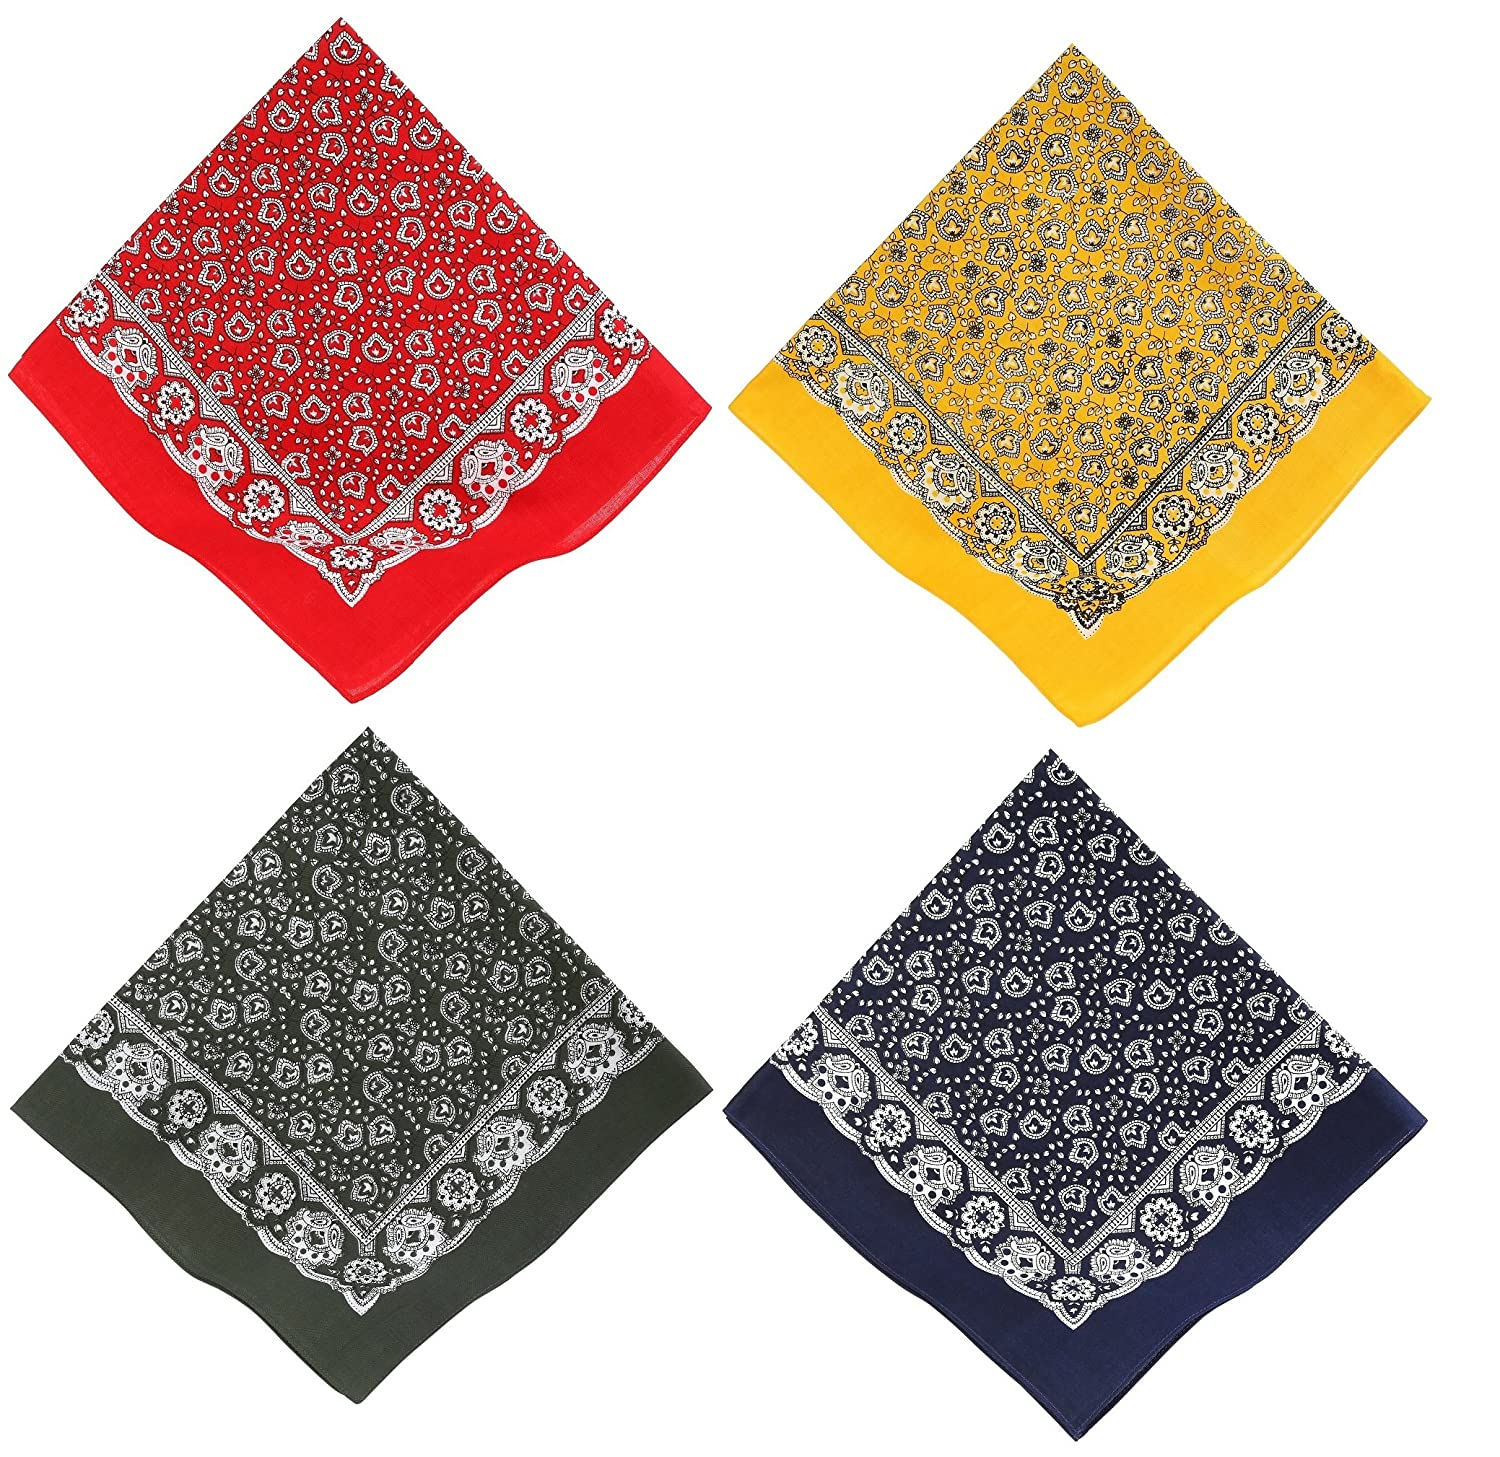 Bandana with Classic Paisley Pattern Size: 55 x 55 cm, Colours: red, yellow, green and blue color blue